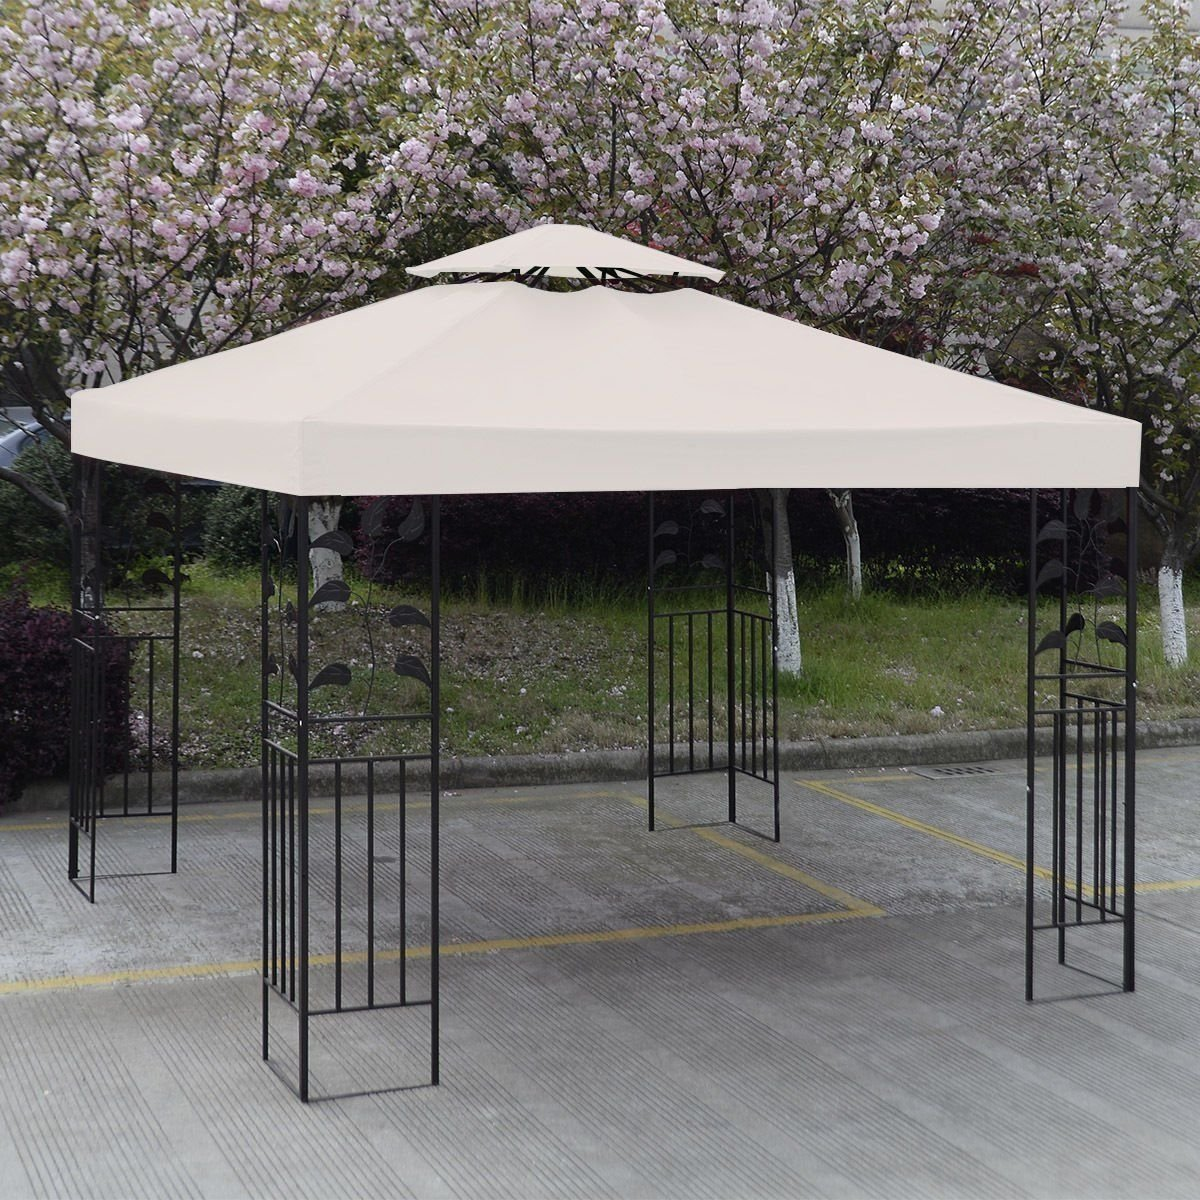 Good 10u0027 X 10u0027 Gazebo Replacement Canopy Top Cover   Beige, Double Teir